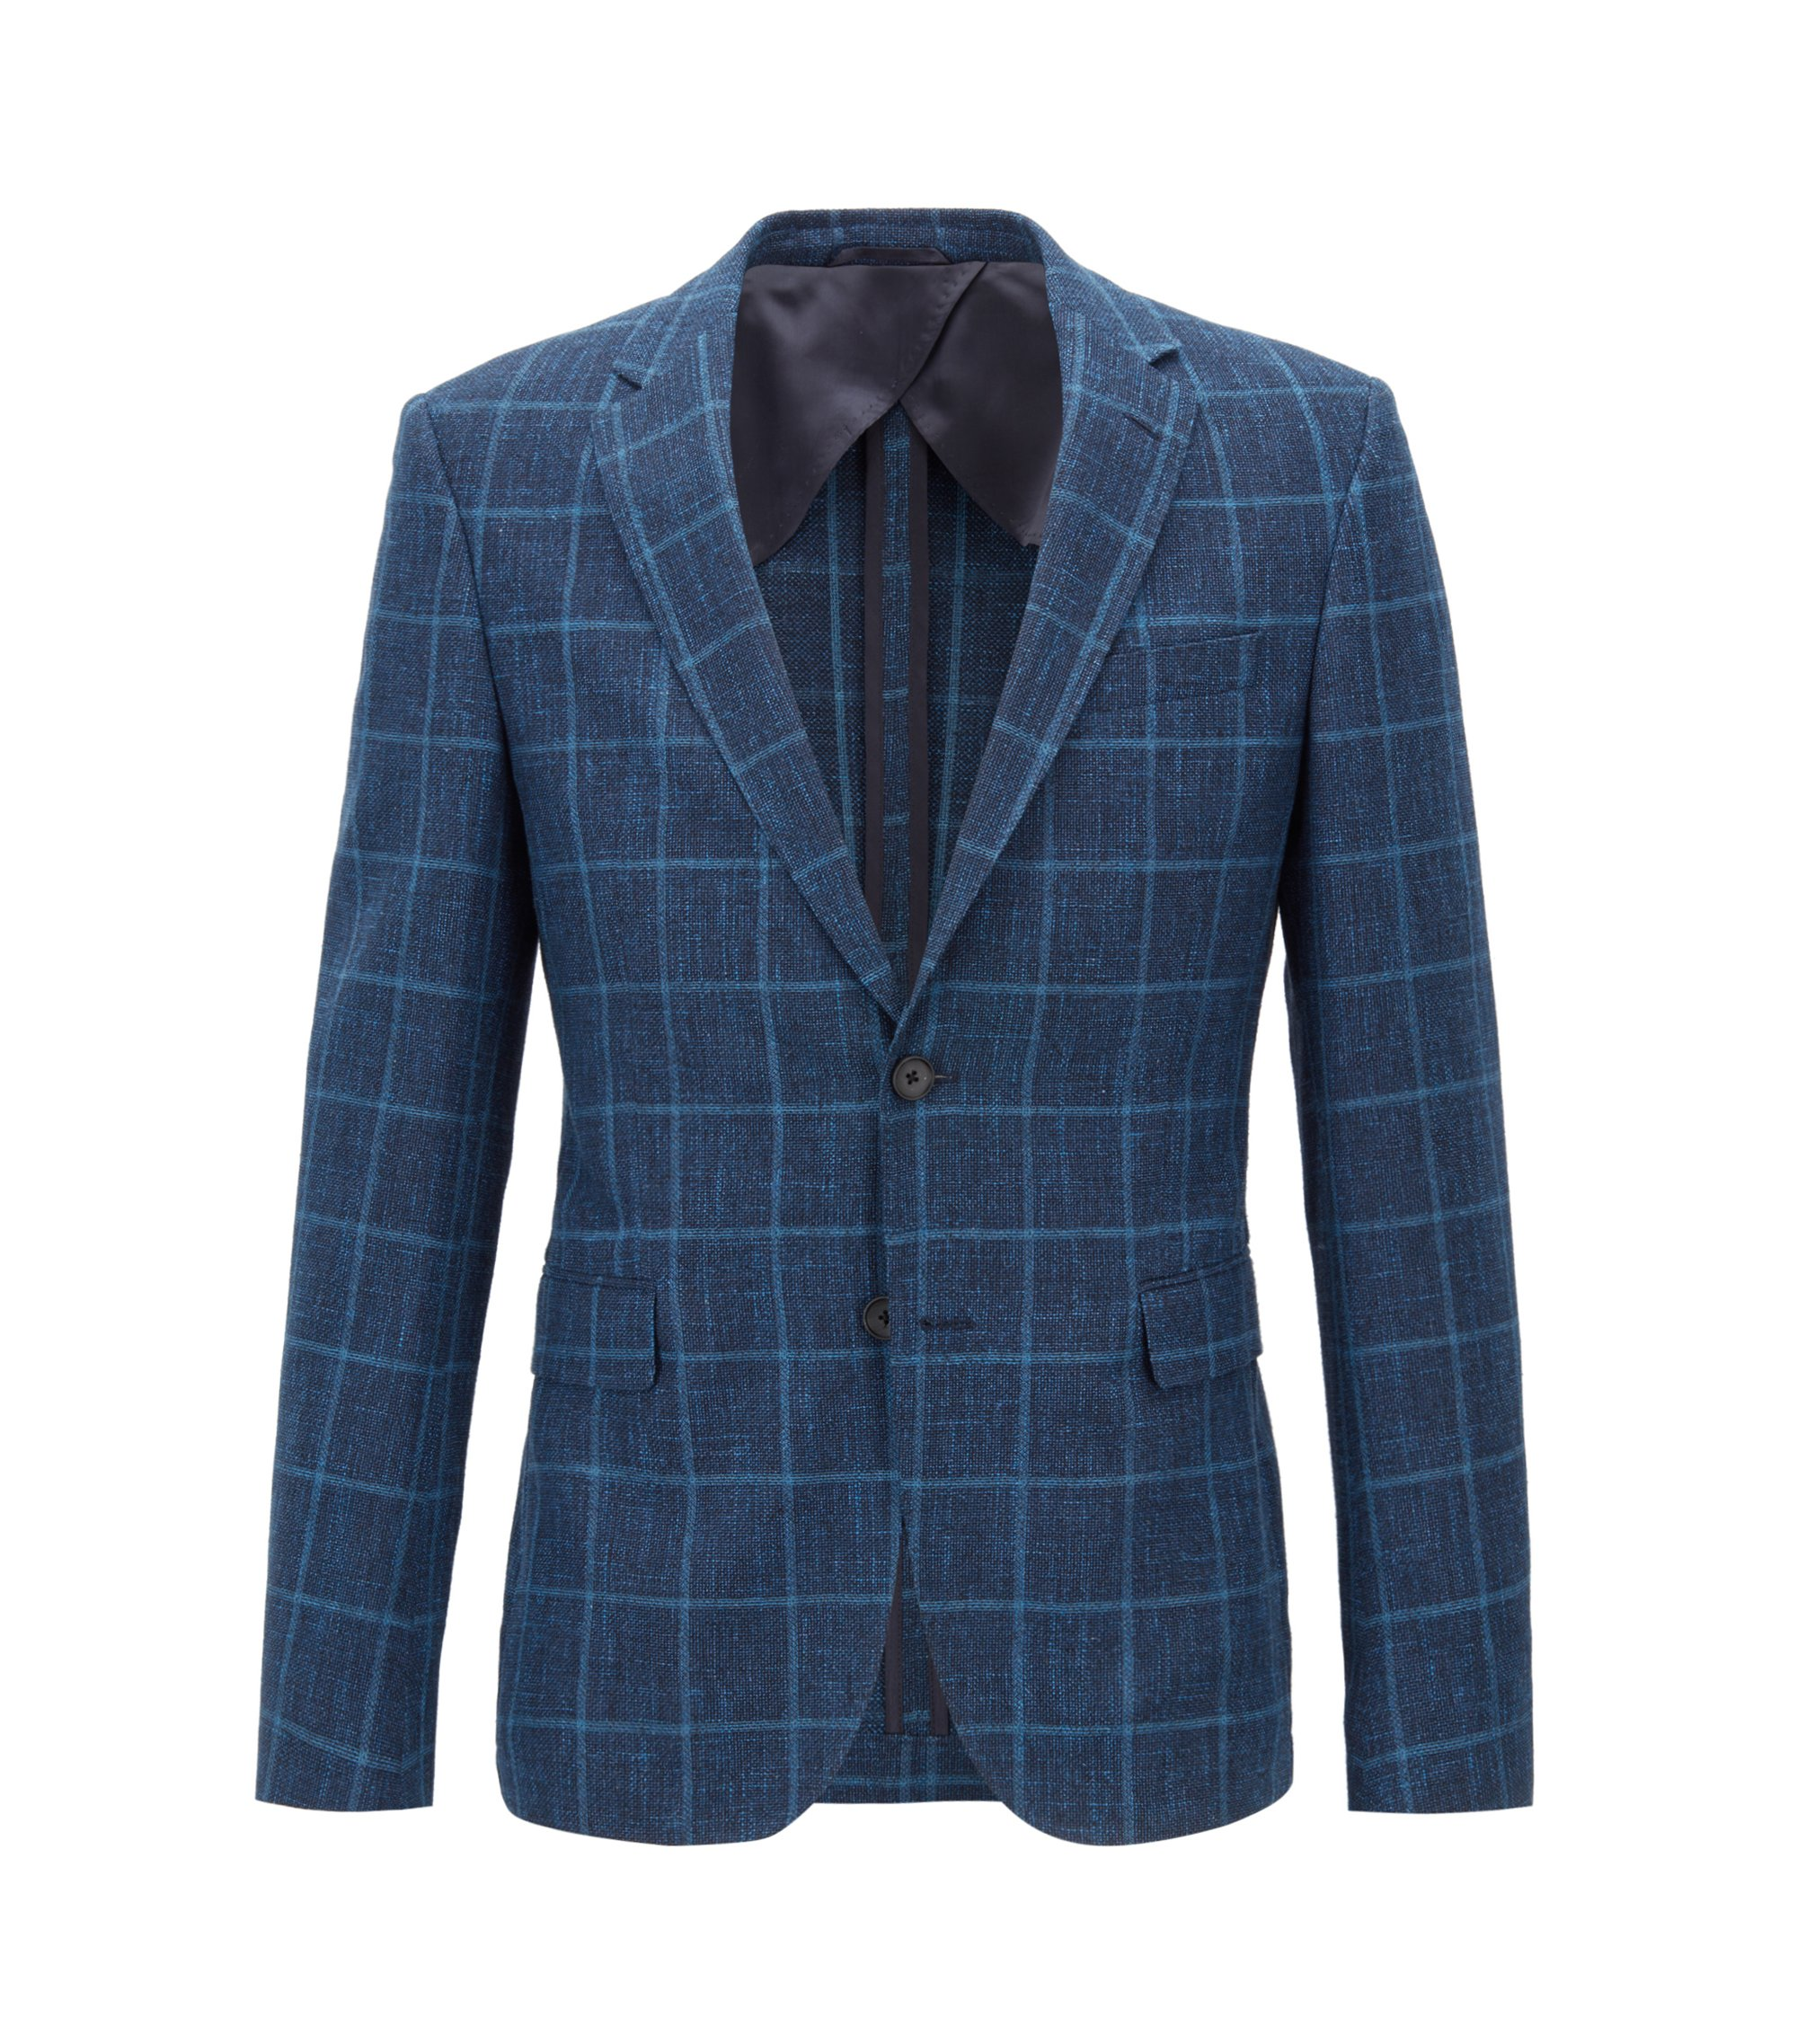 Blazer slim fit in misto lana vergine a quadri, Blu